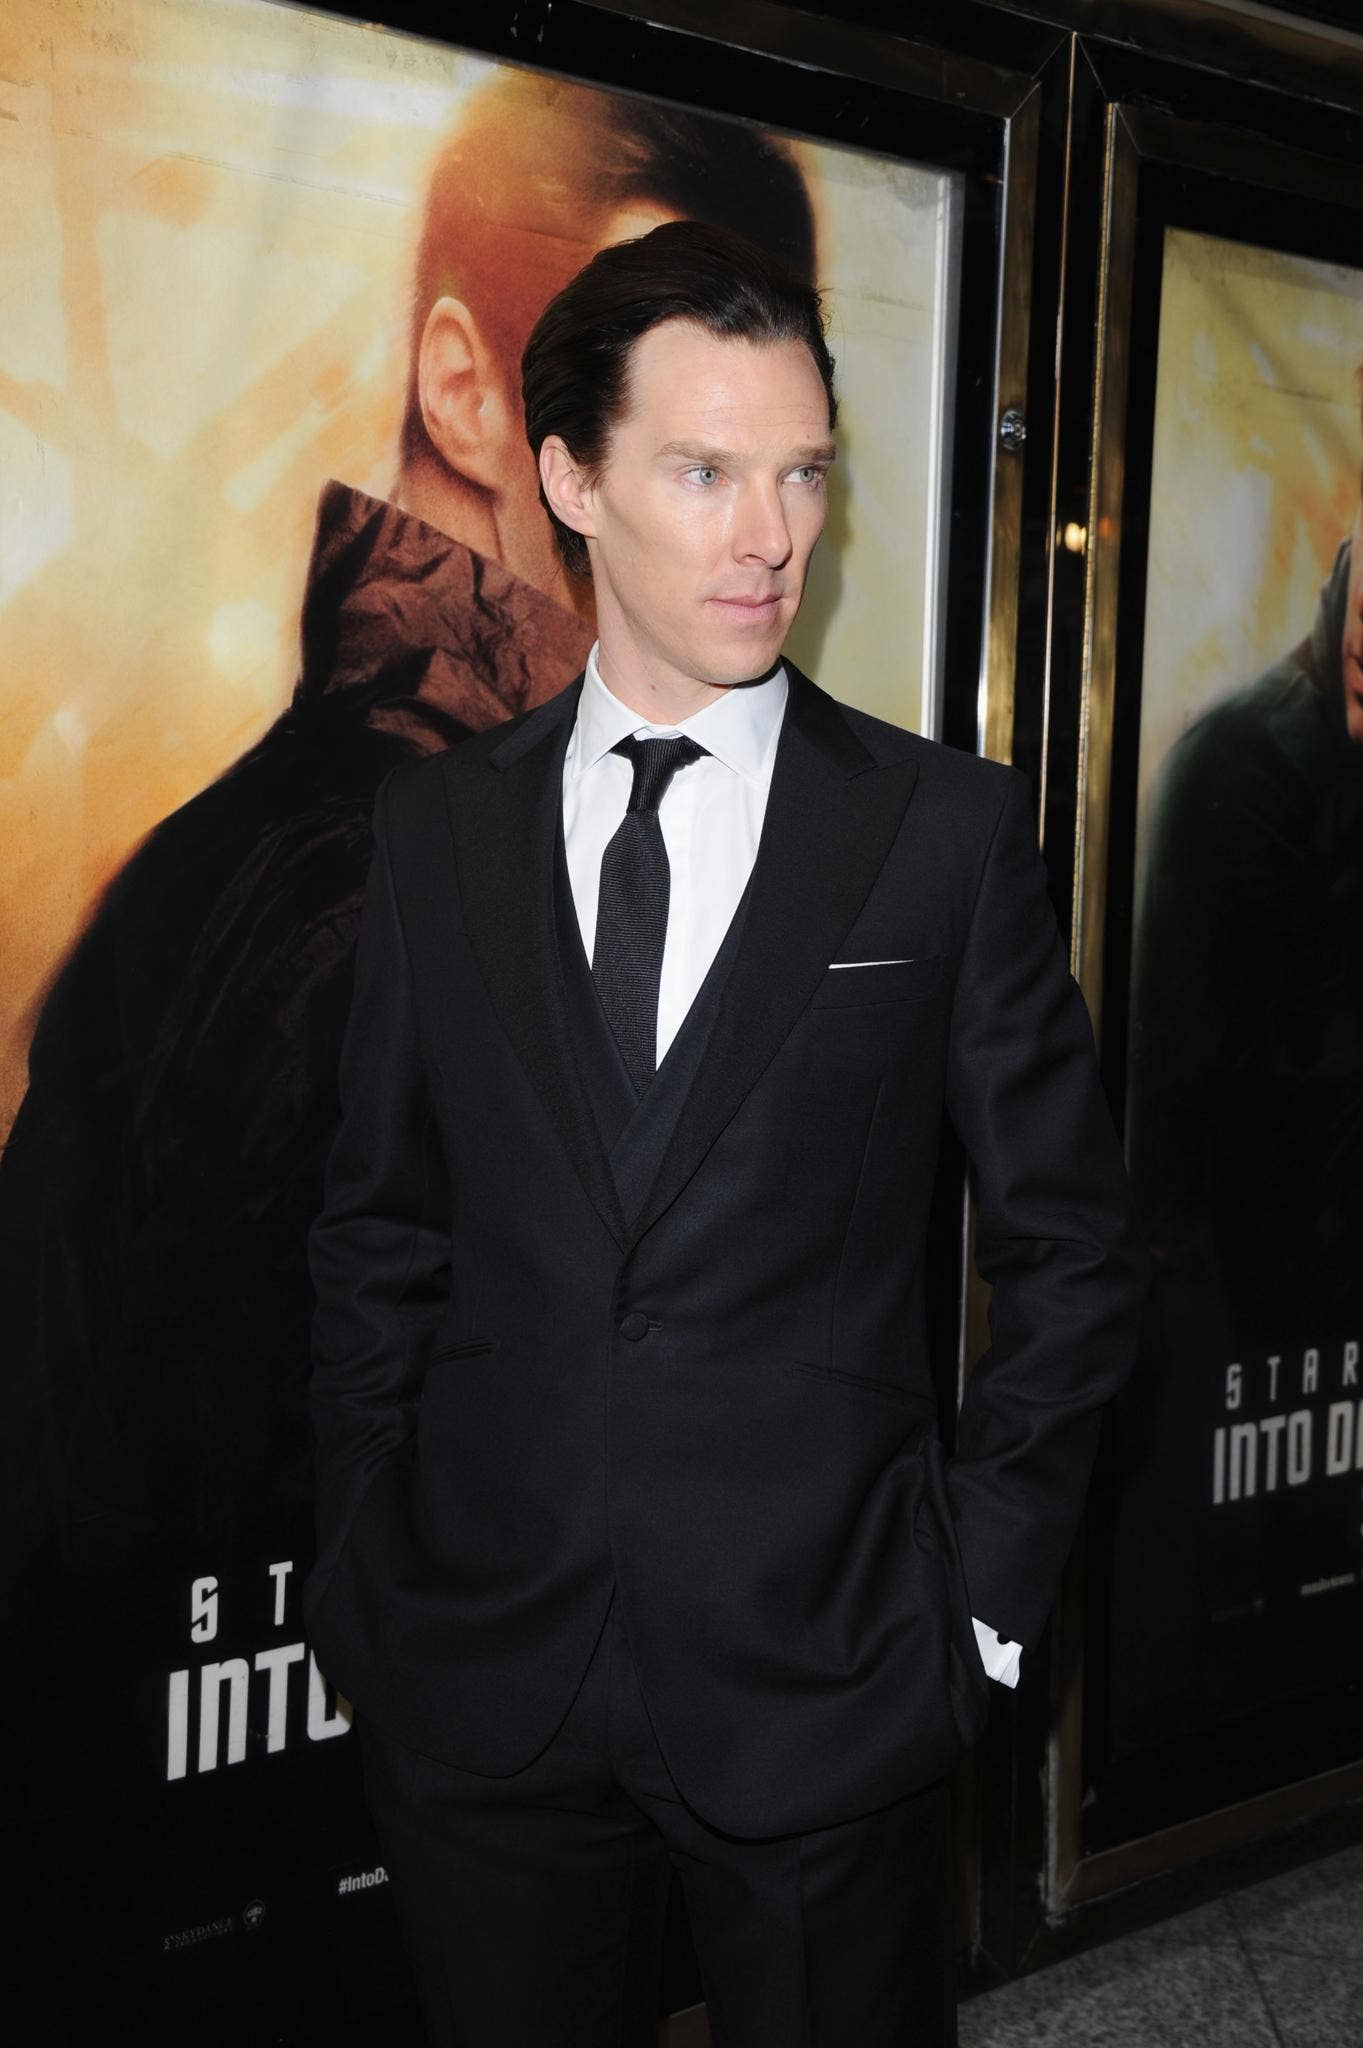 Benedict Cumberbatch attends the UK Premiere of 'Star Trek Into Darkness' in London